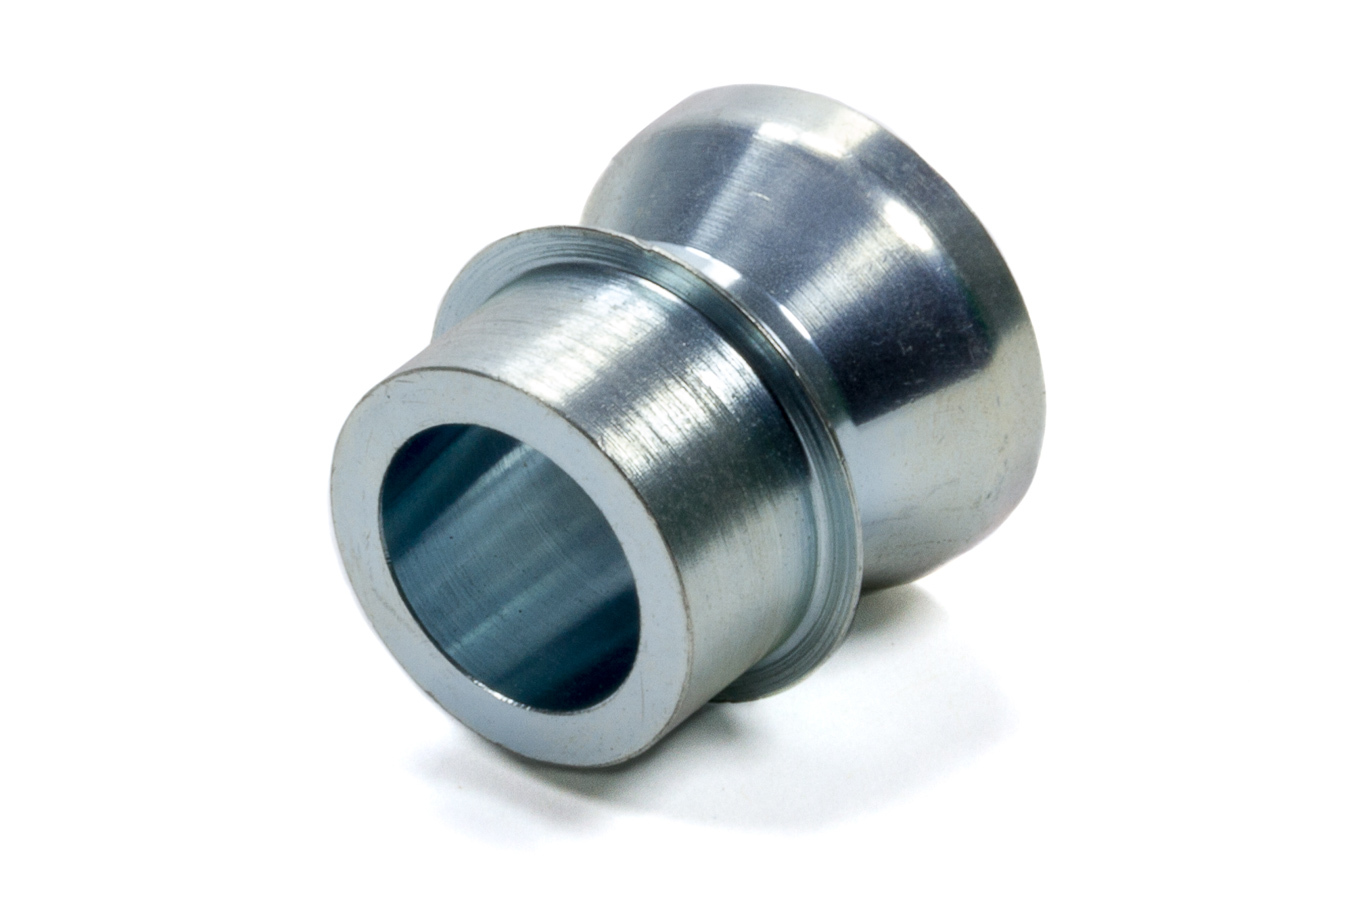 Meziere MB8762 Rod End Bushing, 7/8 to 5/8 in Bore, High Misalignment, Chromoly, Natural, Each